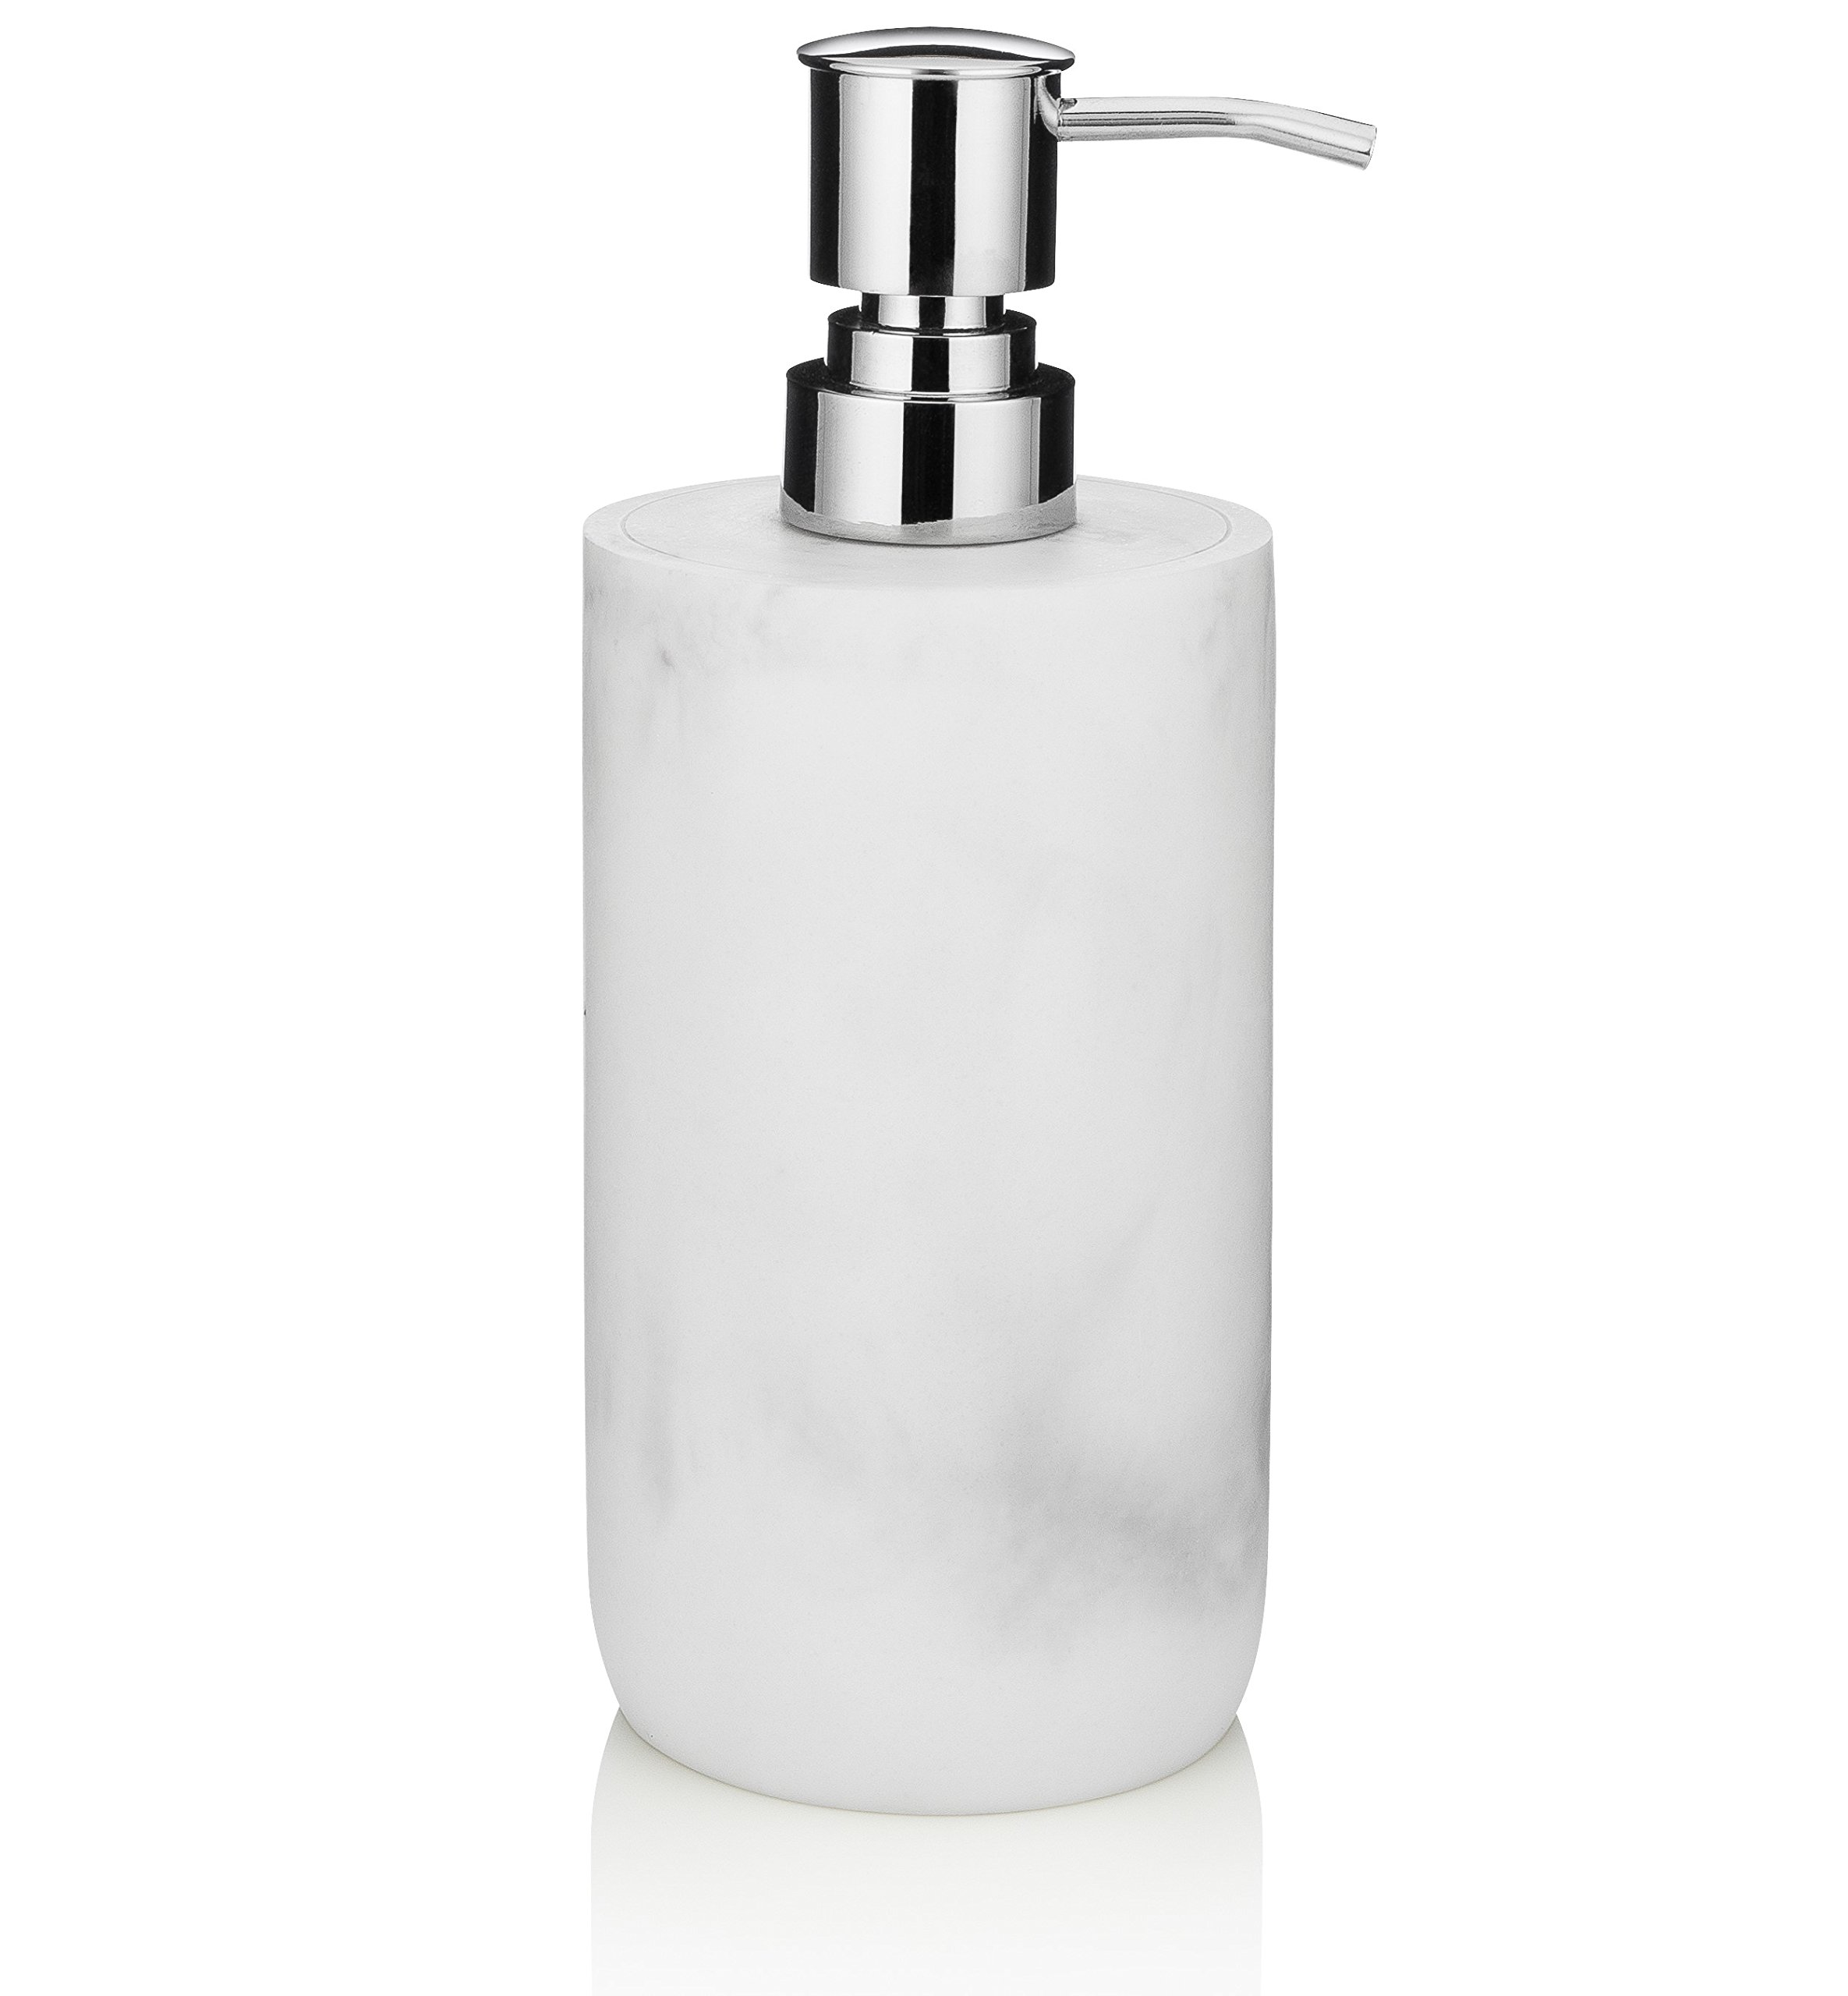 EssentraHome Blanc Collection White Liquid Soap Dispenser with Metal Pump for Bathroom, Bedroom or Kitchen. Also Great for Hand Lotion and Essential Oils.